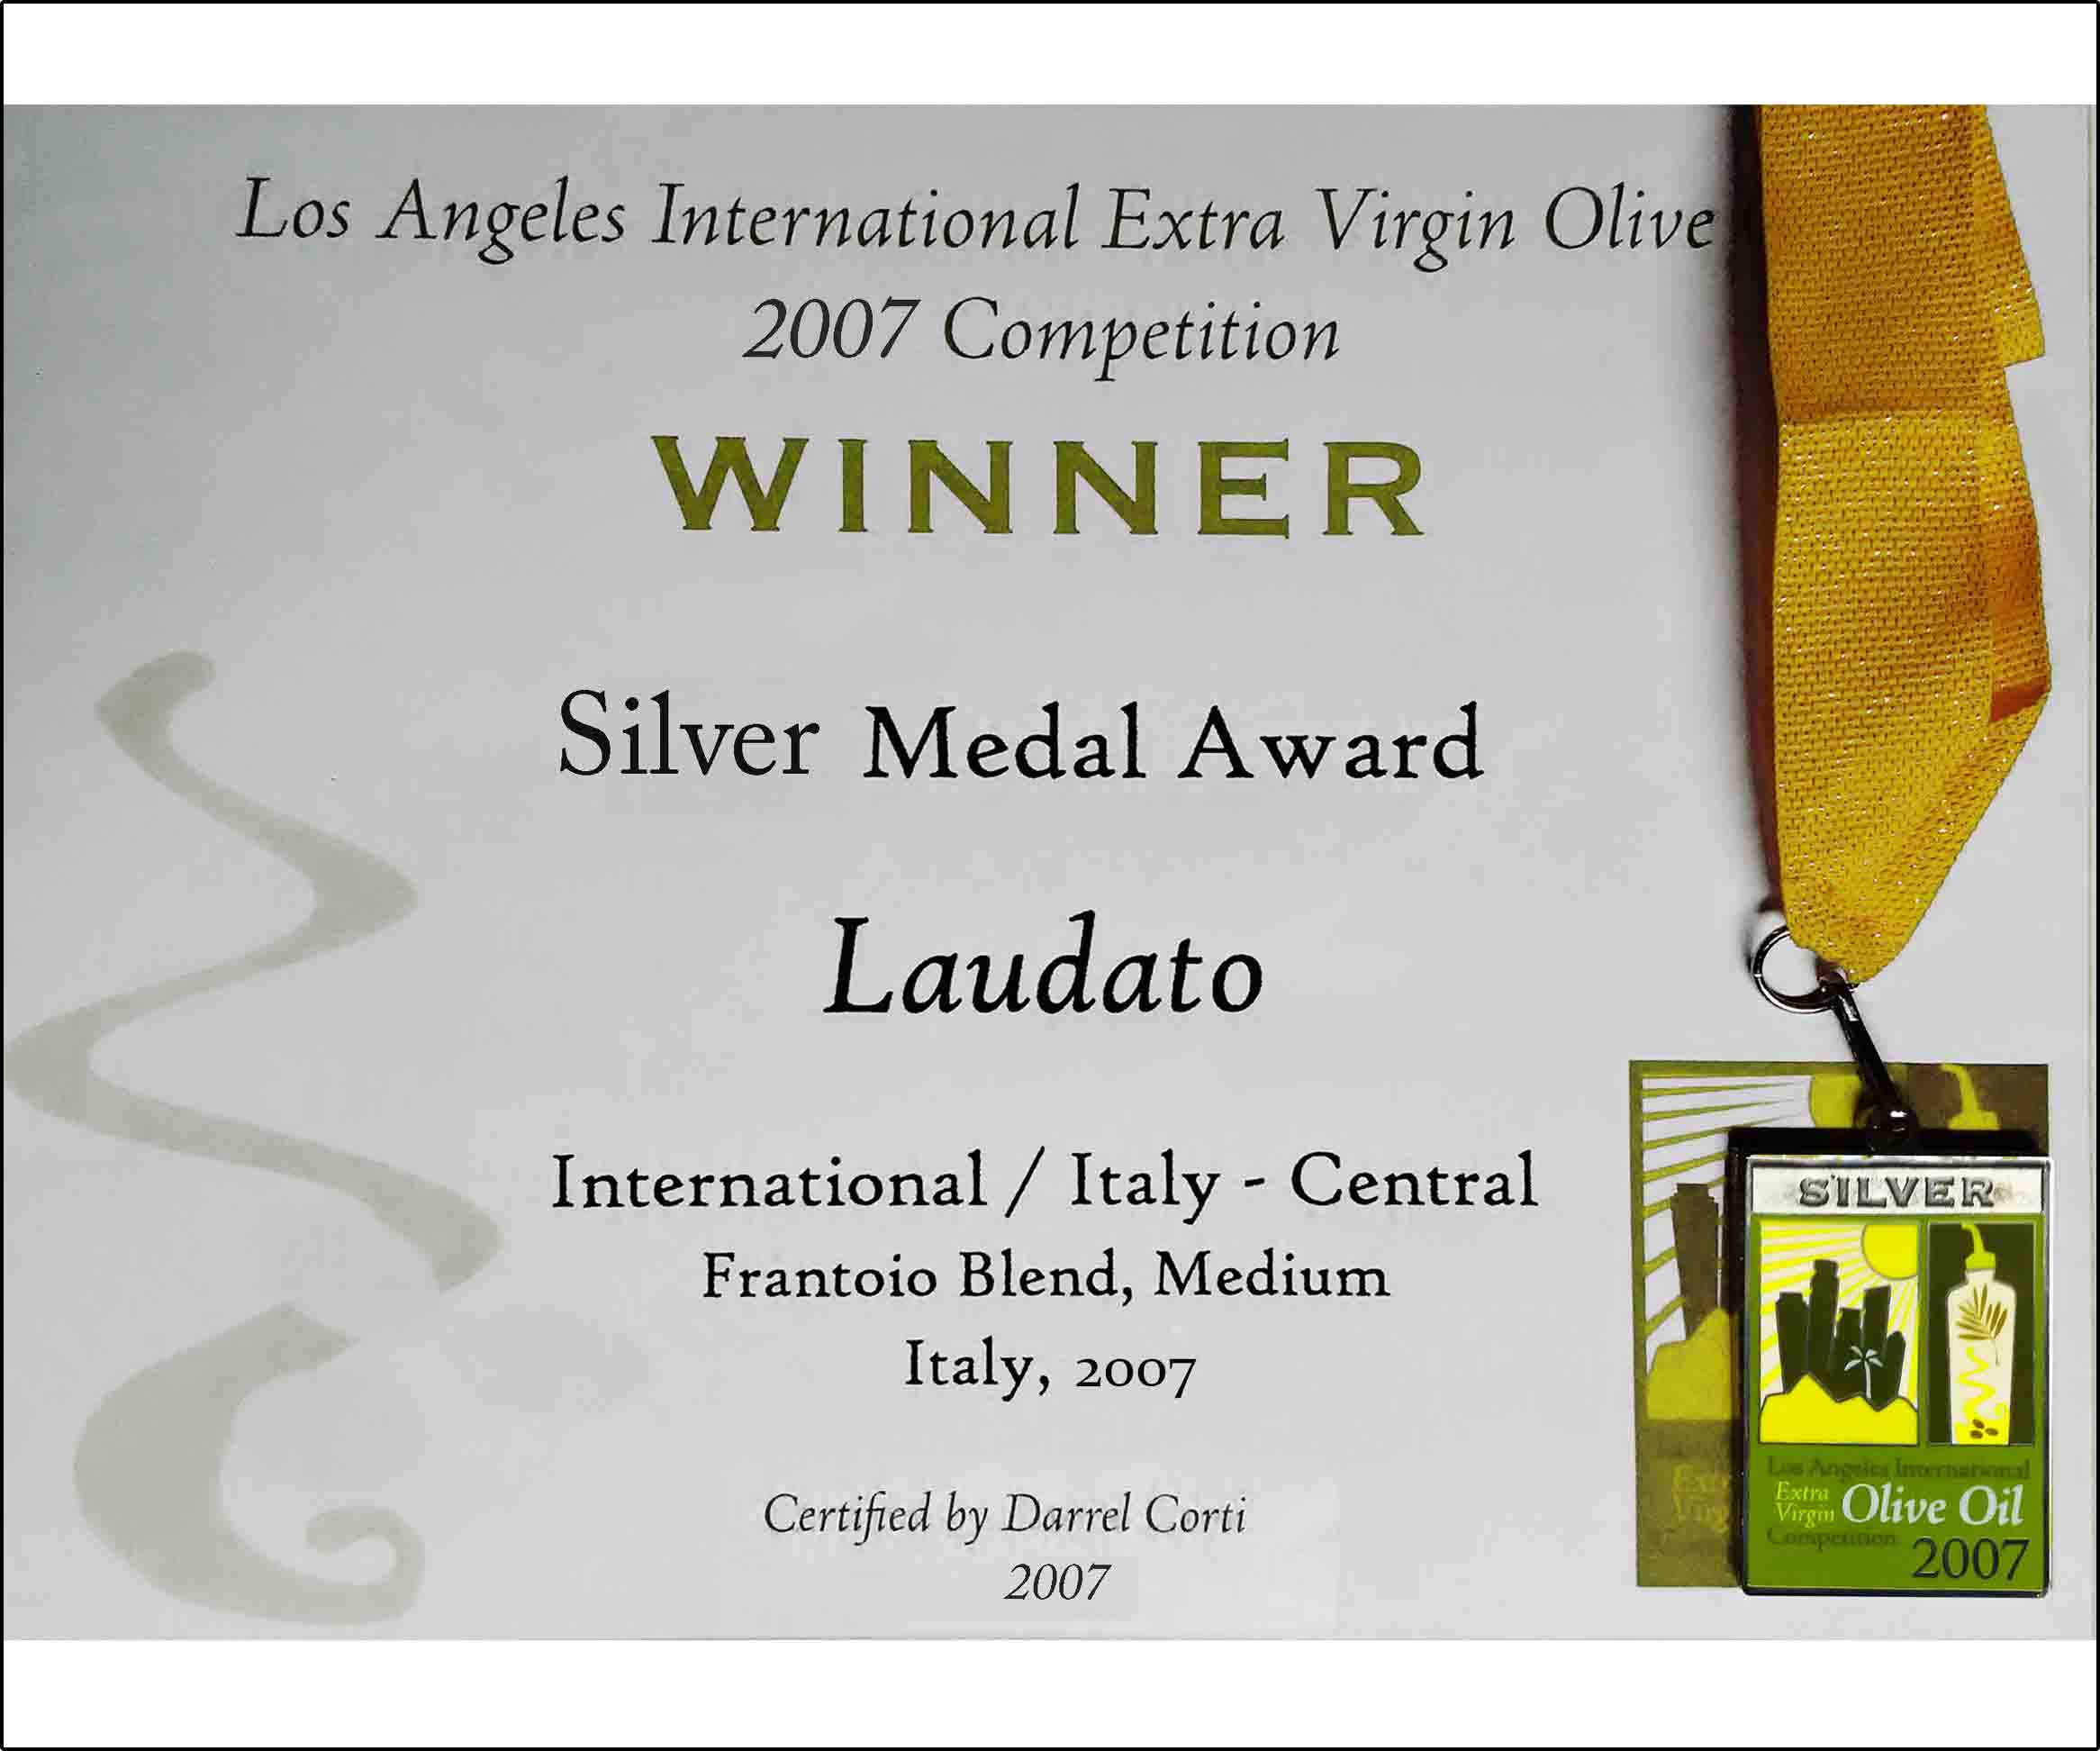 Los Angeles International Extra Virgin Olive Oil Competition 2007